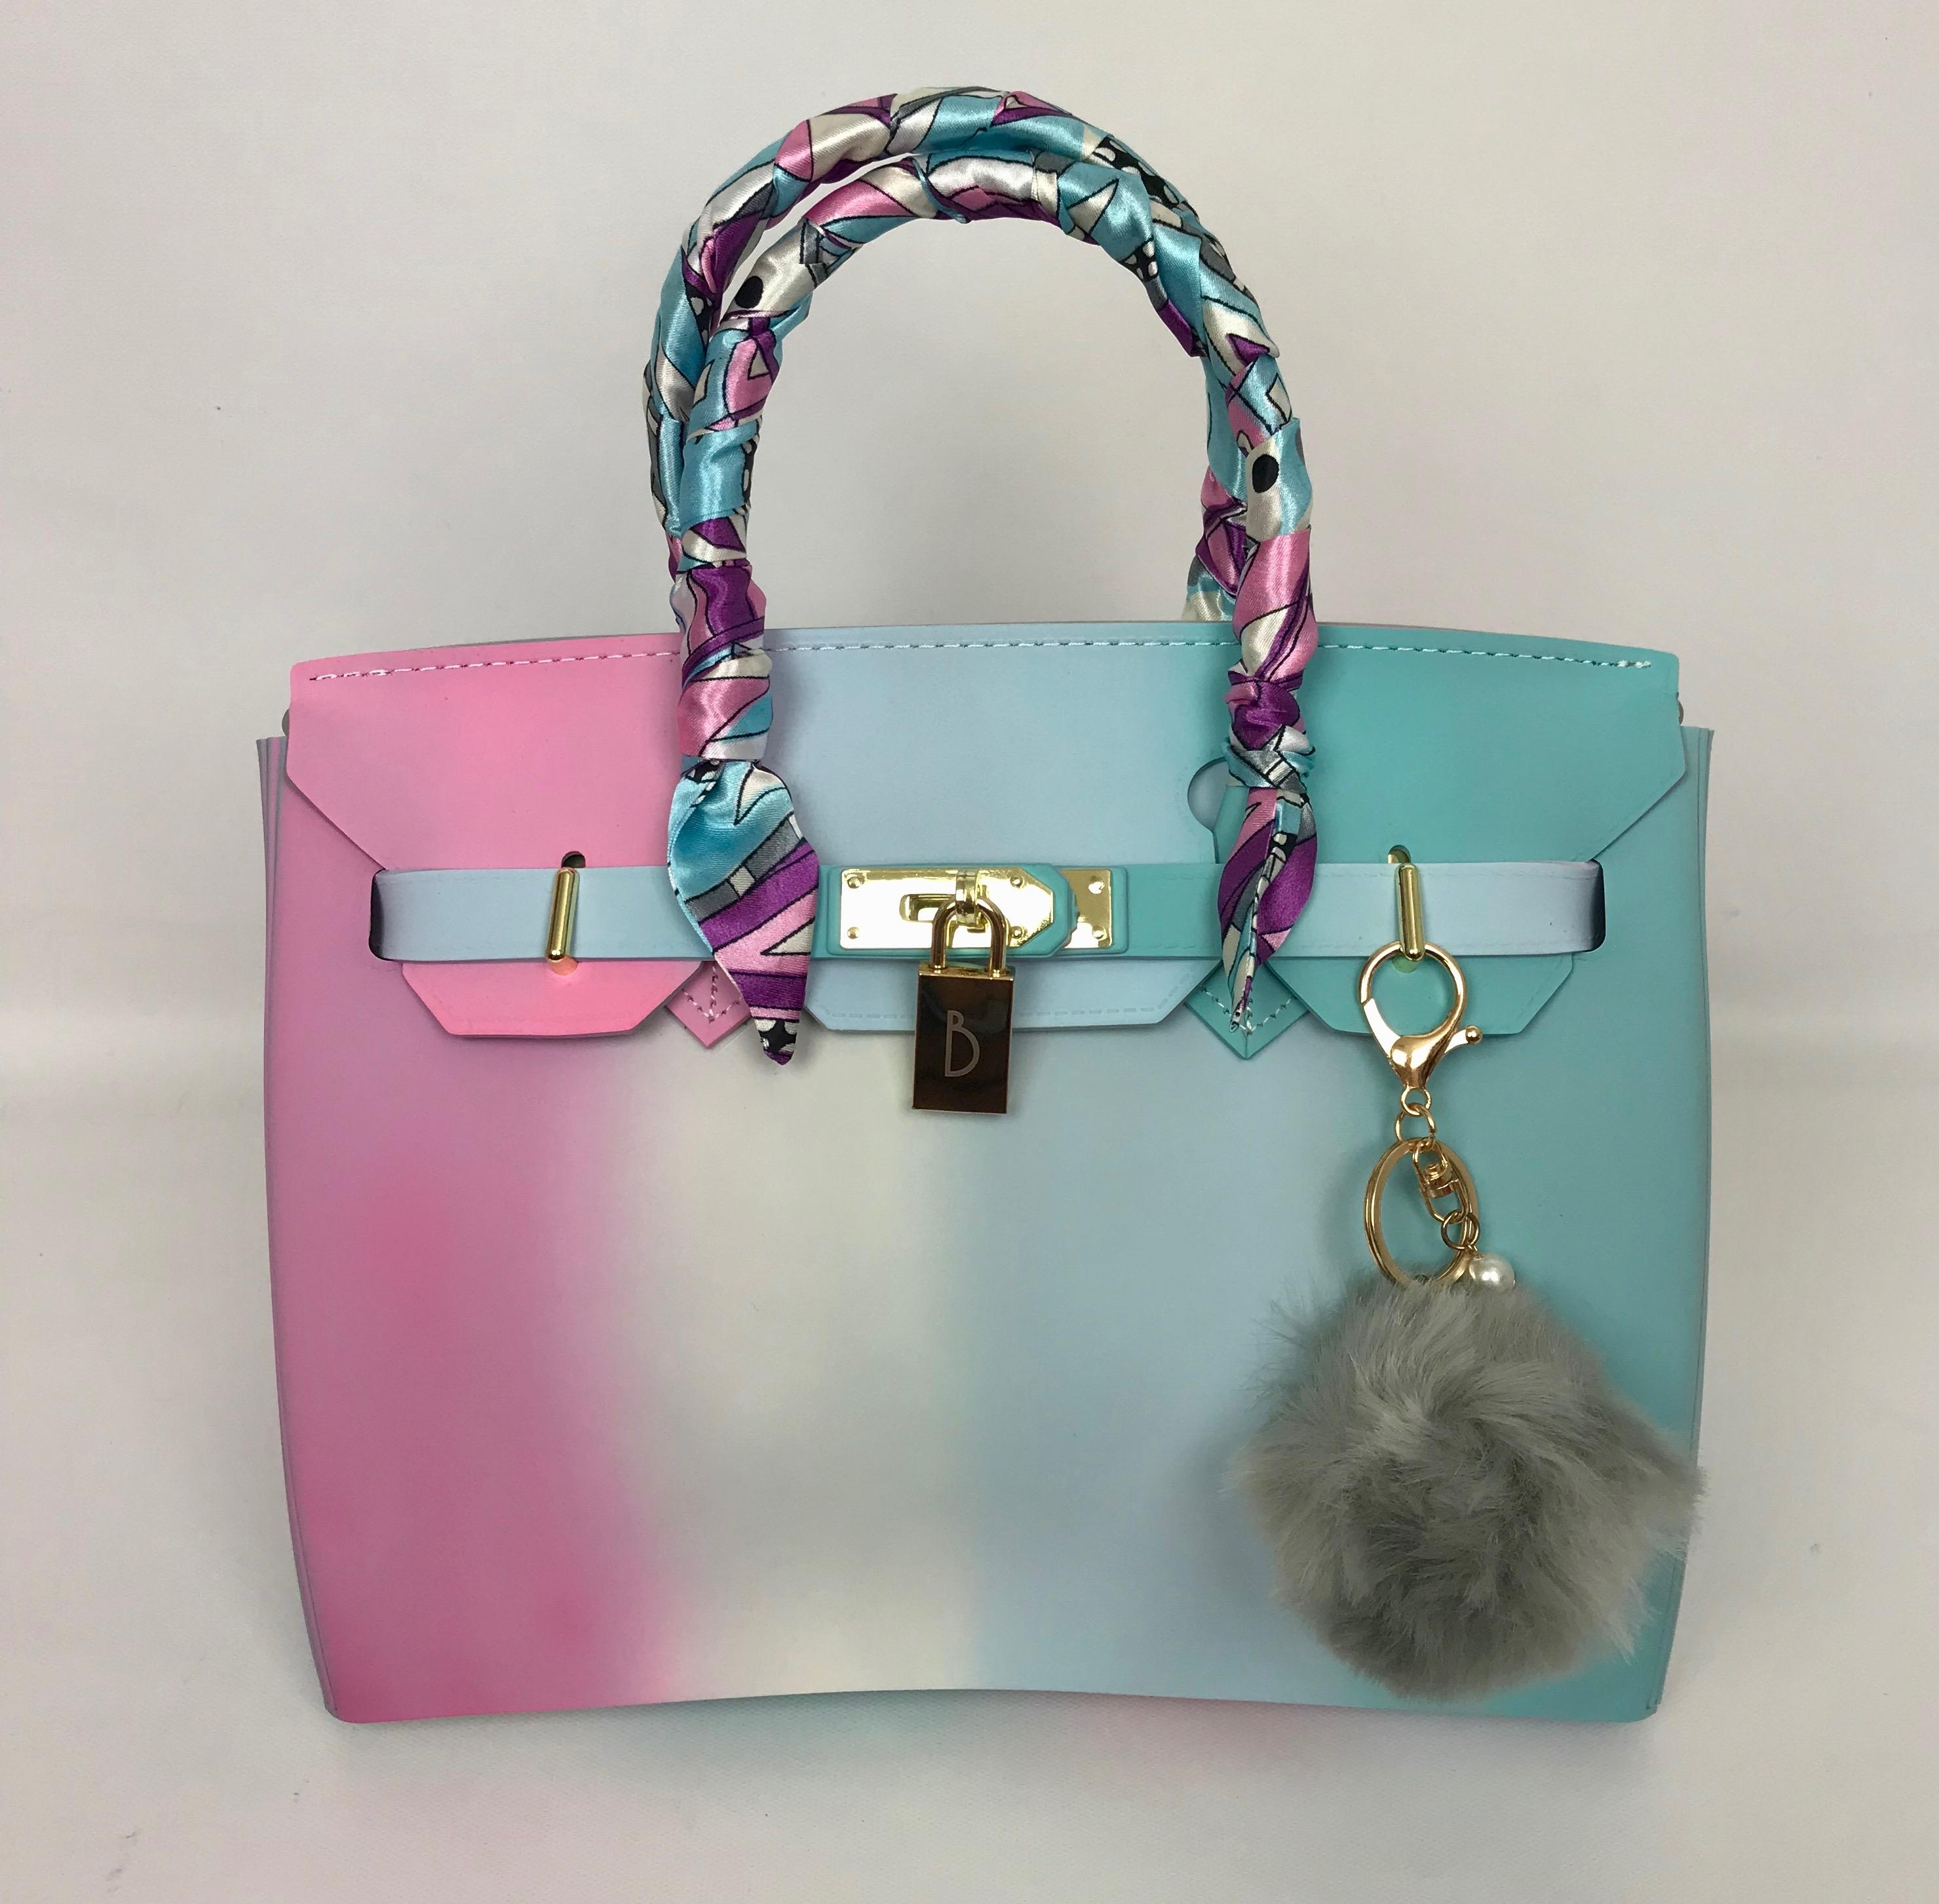 dd886a14576a real hermès twilly scarf a866e 13930; get jelly couture birkin hermes tote  in pink white blue aqua bfbb8 50c7b